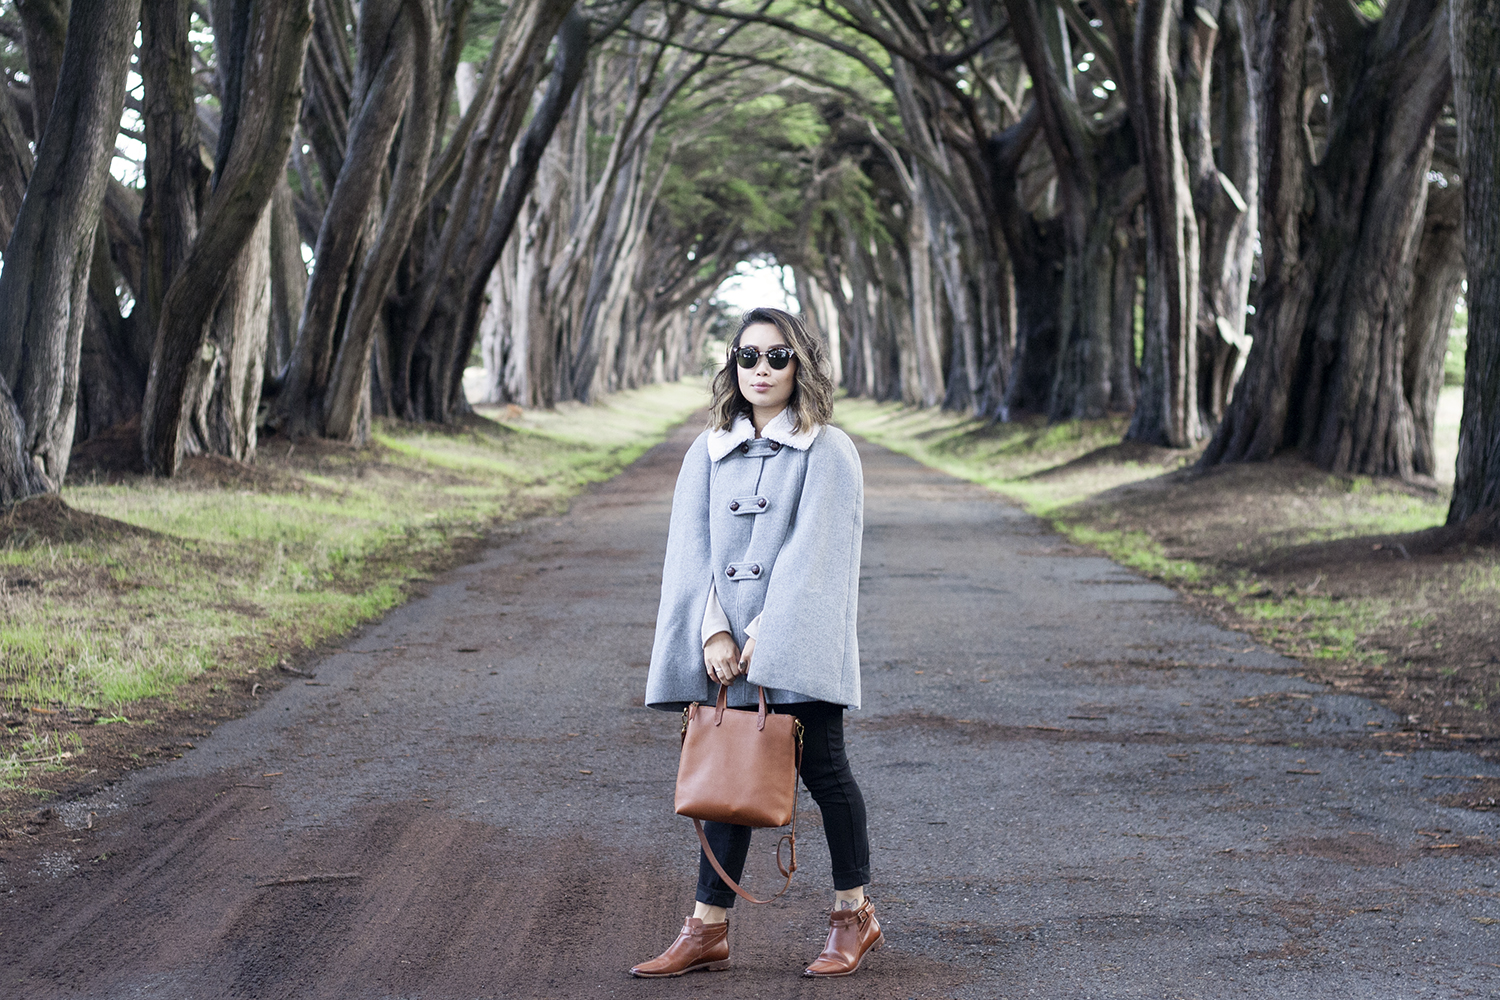 02pointreyes-cypresstreetunnel-madewell-fashion-travel-style